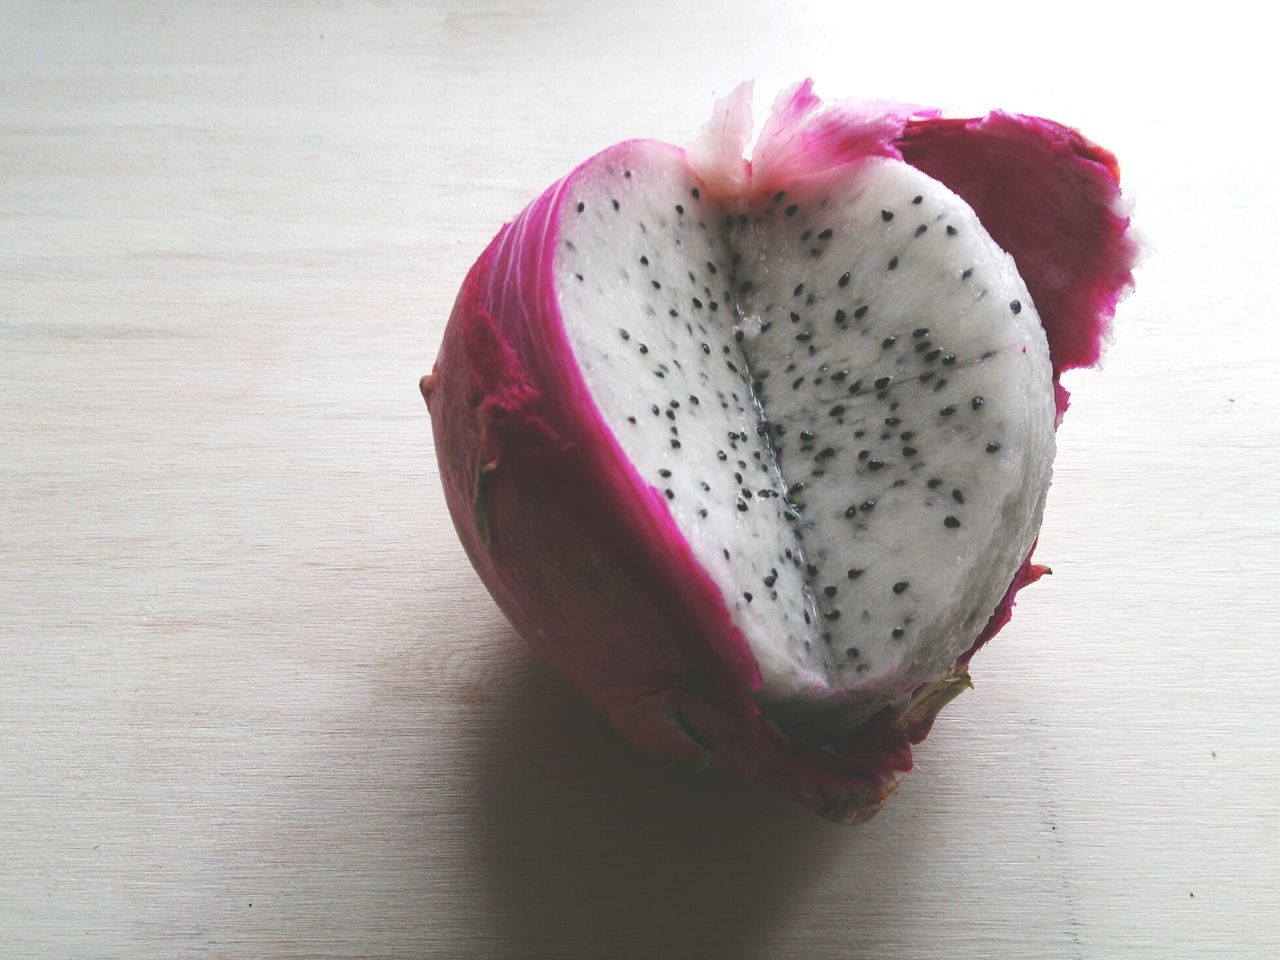 Dragonfruit Sony Xperia Zr Mobile Photography Freshness Pink Color No People Pitaya Close-up Healthy Eating Fruit Fruits Food Delicious Sweet Healthy Food Natural Light Natural Soft Fruit Photography Food Photography